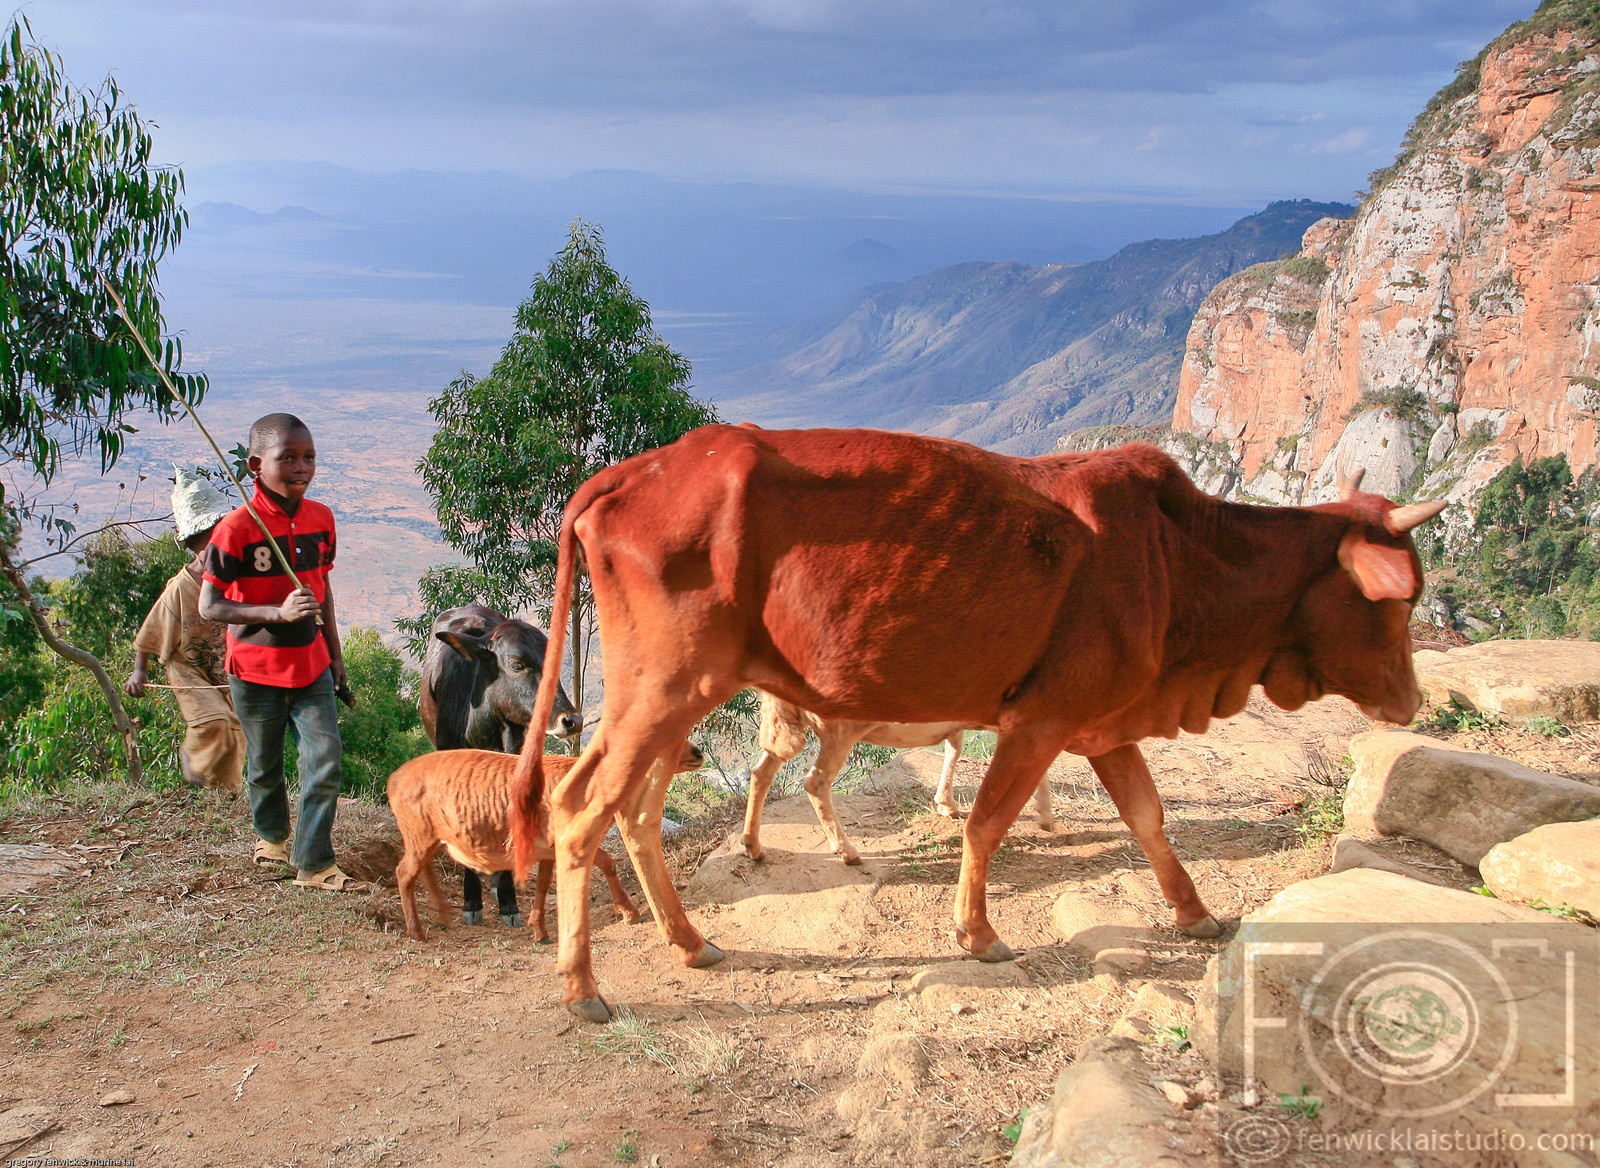 The Cattle Herder